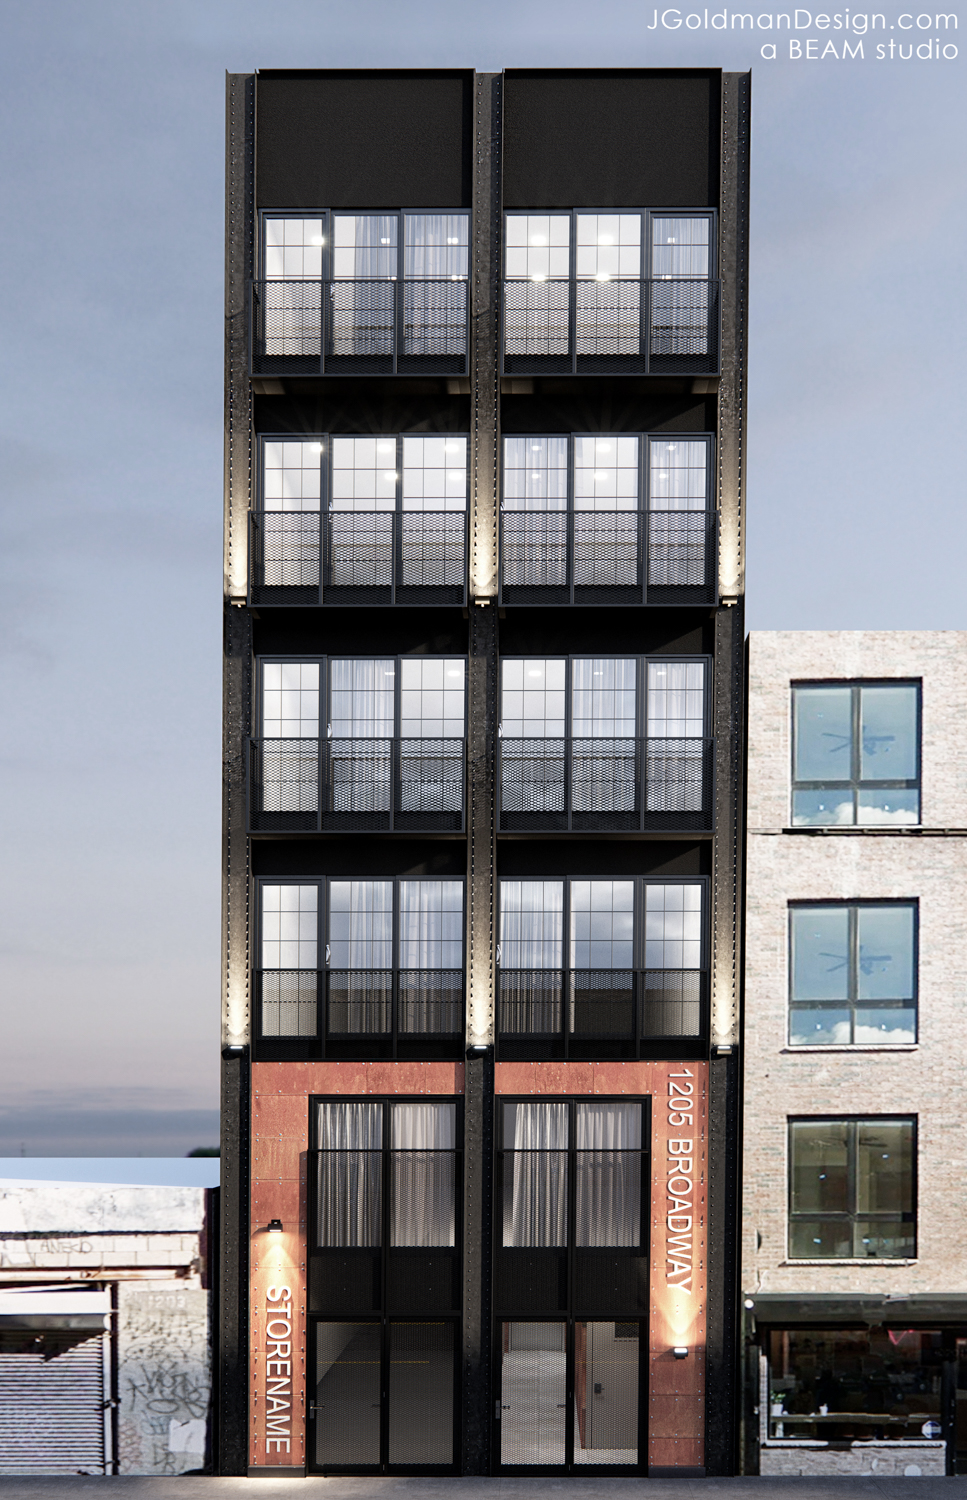 1205 Broadway elevation, rendering by Beam Group